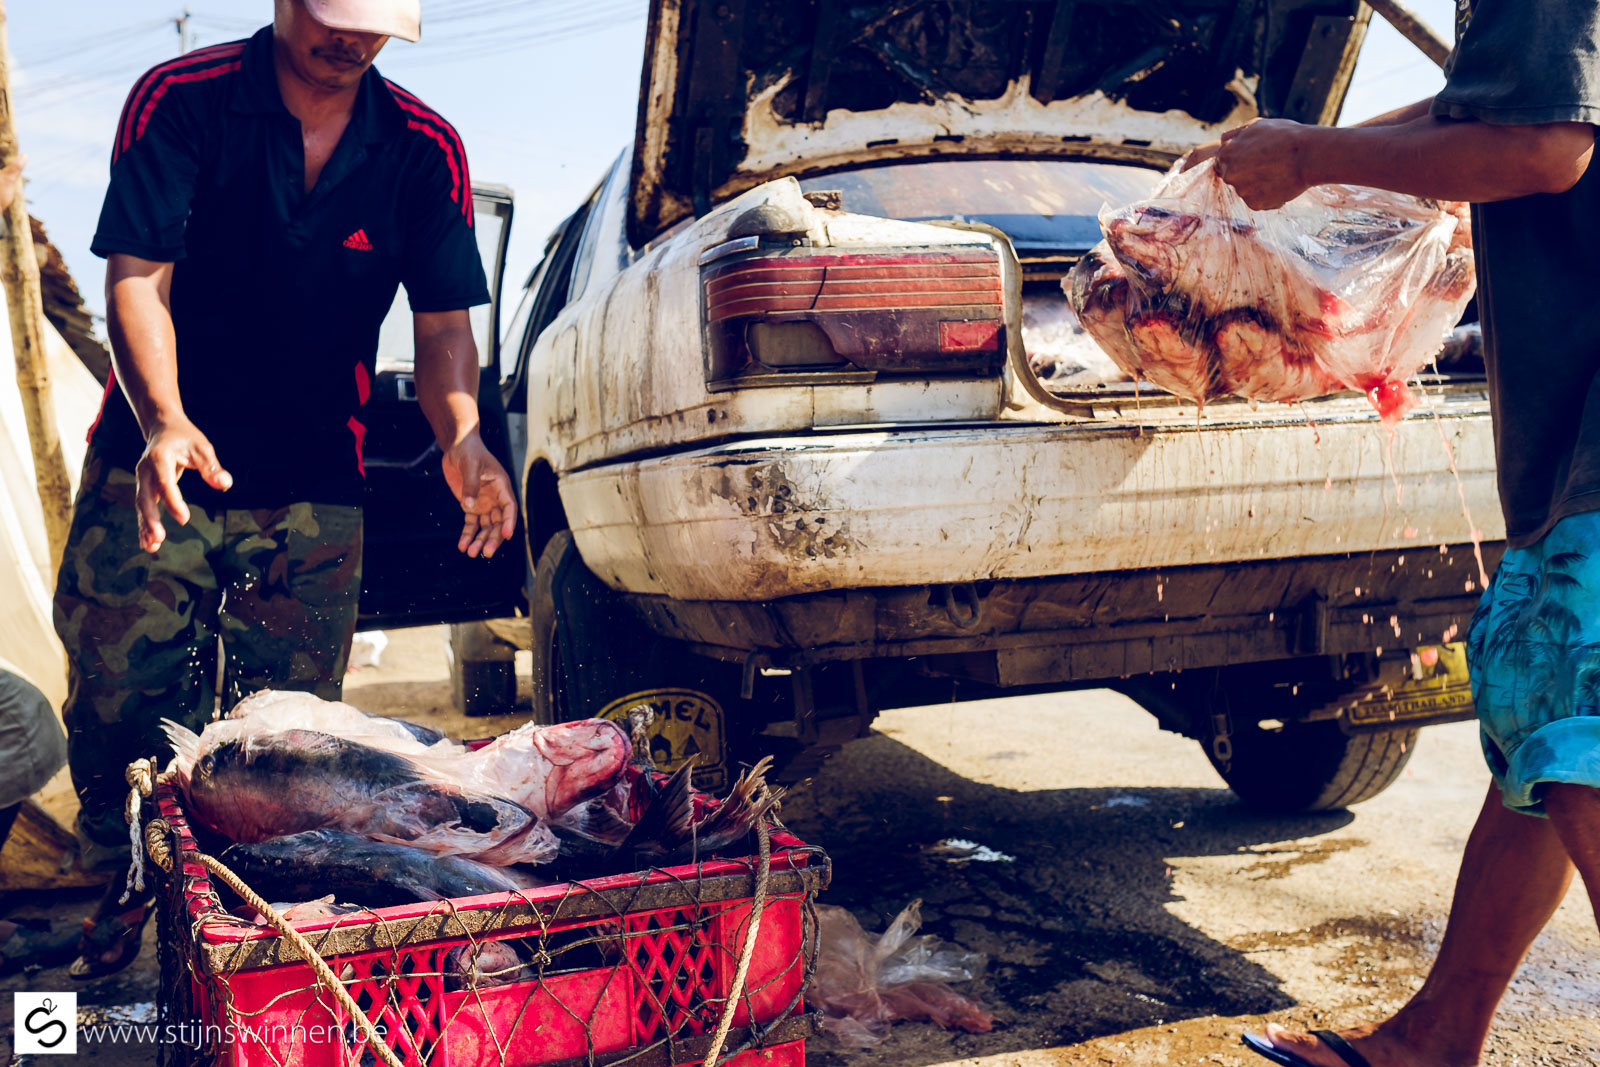 Unloading fish out of car